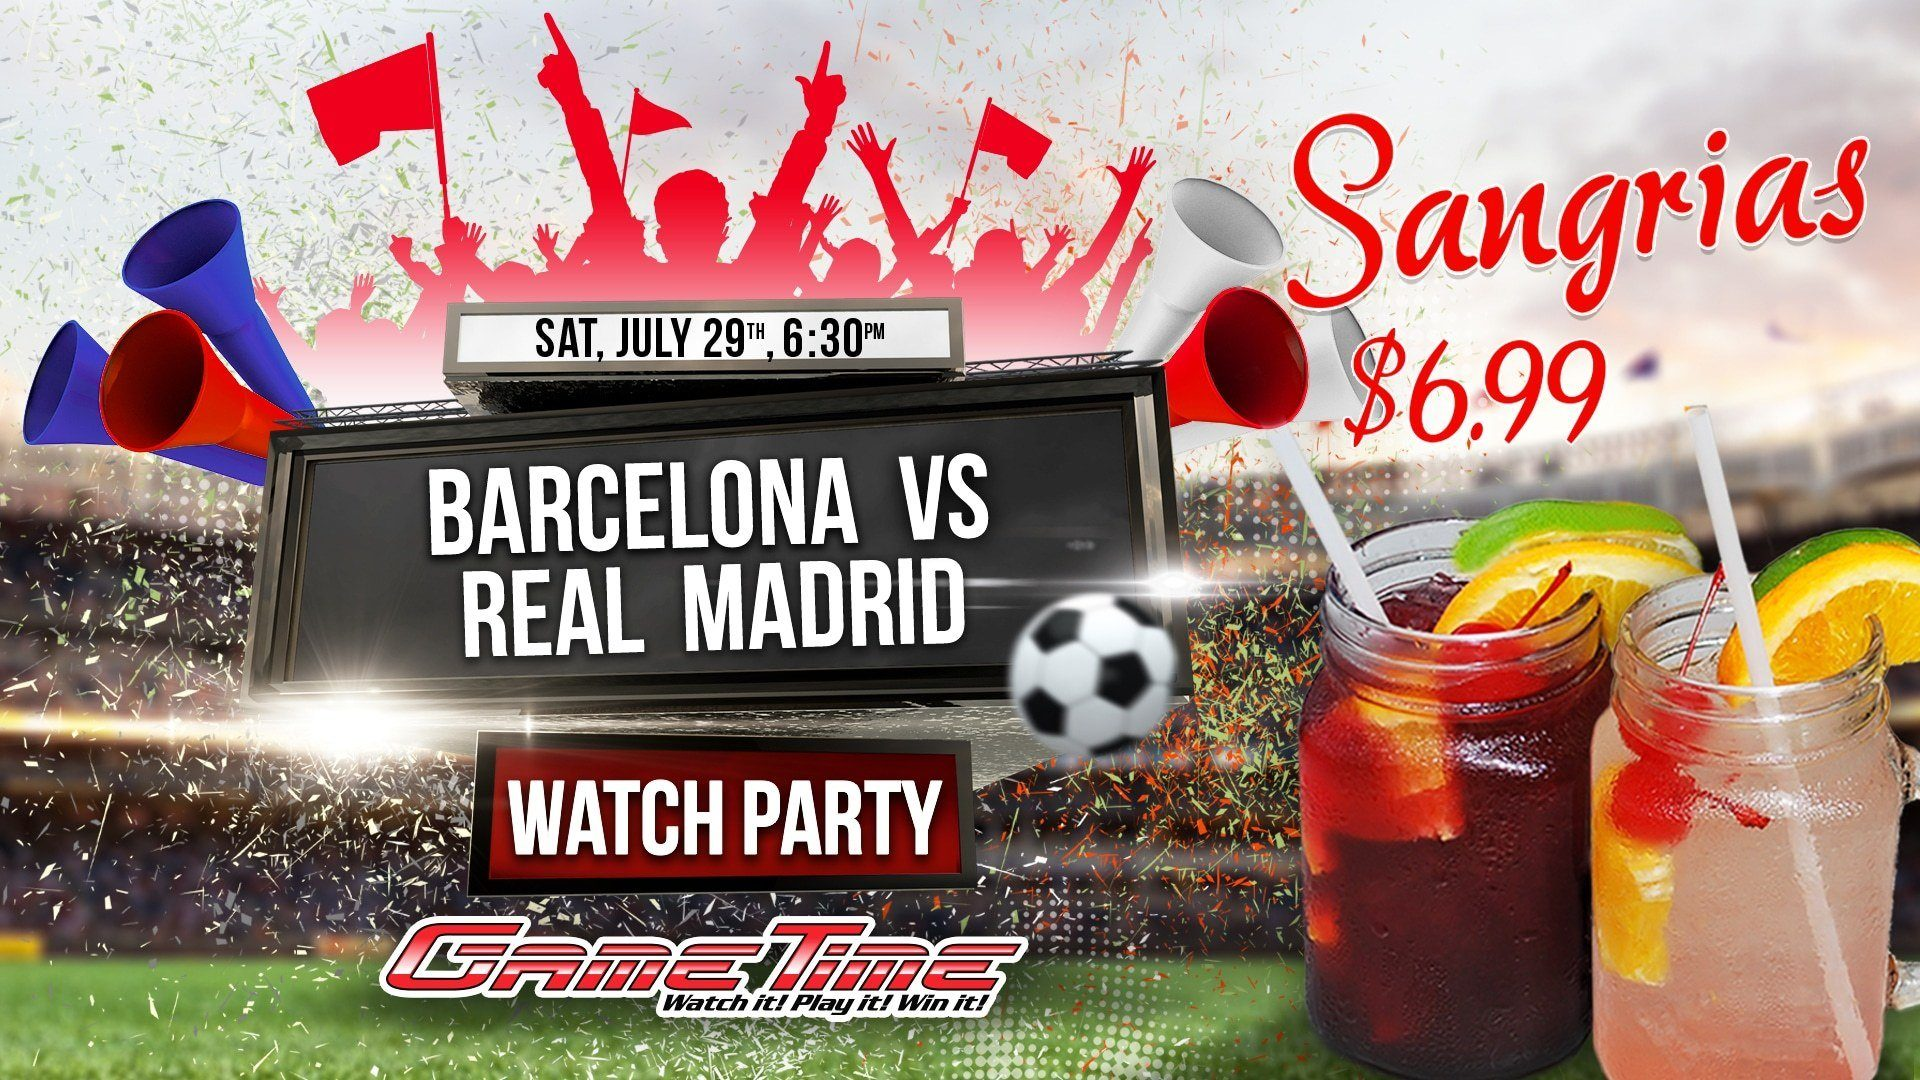 El-Clasico-Watch-Party-in-Miami-Tampa-Fort-Myers-Barcelona-vs-Real-Madrid-Watch-it-at-GameTime-Sports-Bar-Entertainment-center-drink-specials-face-painting